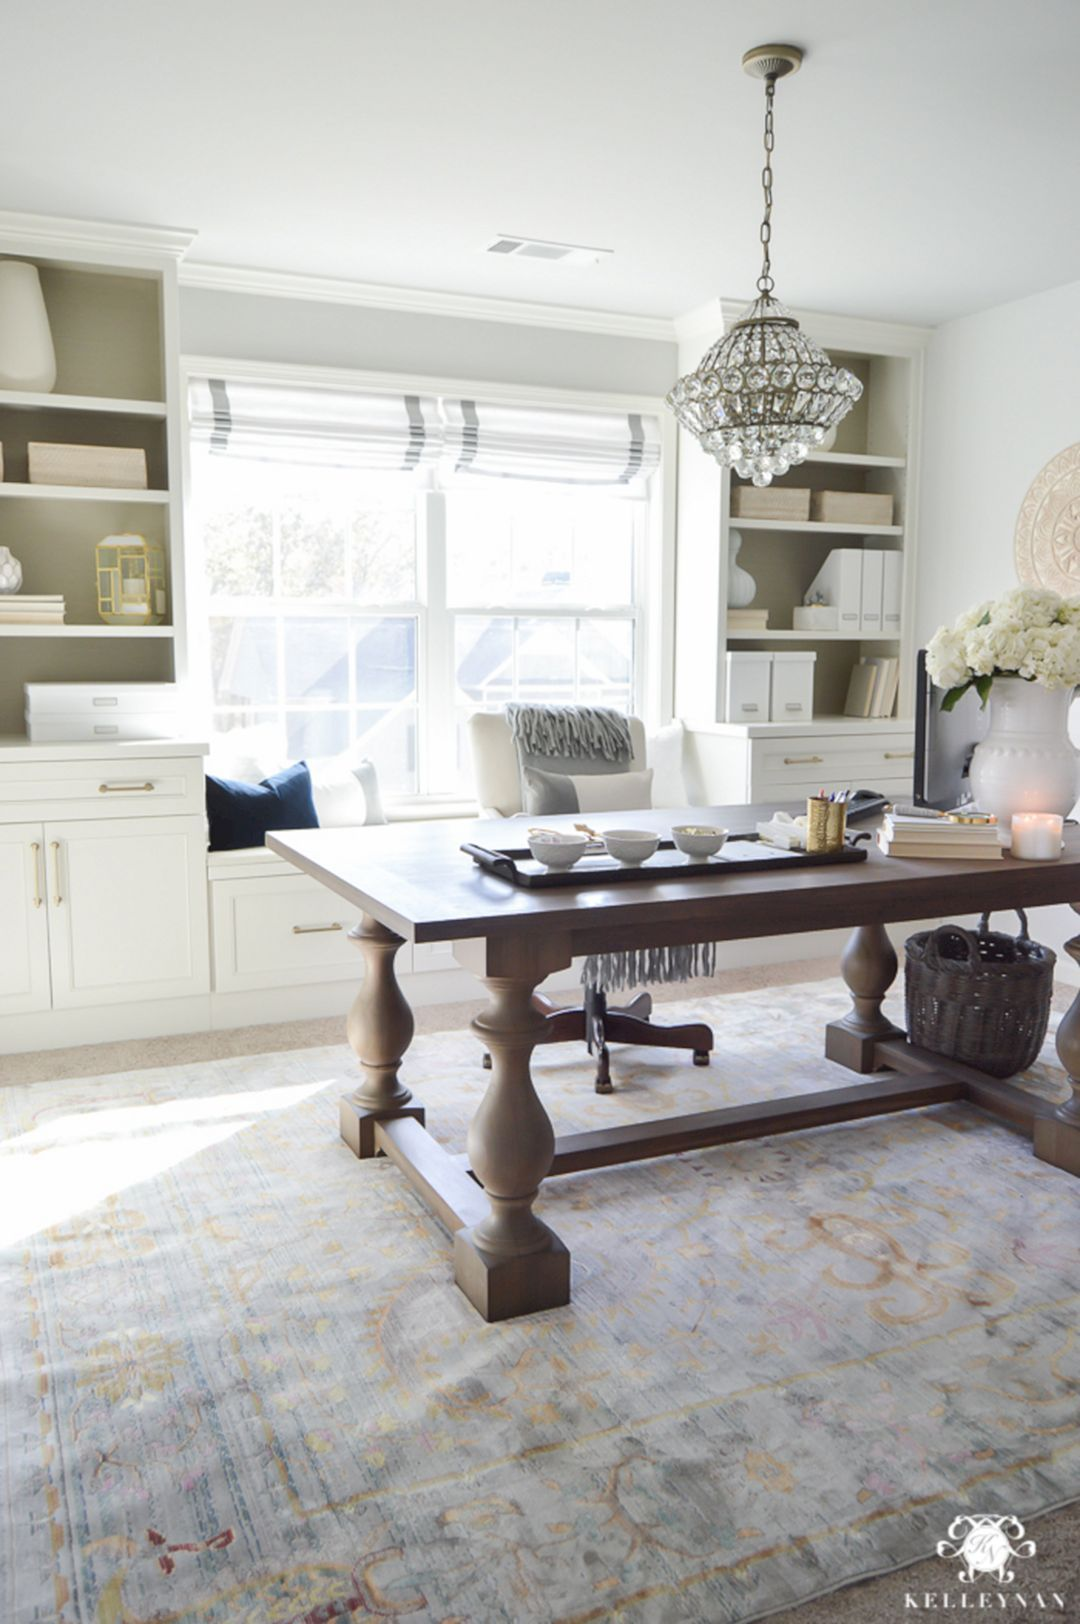 75+ Incredible Home Office Built In Cabinets Ideas To Inspire You